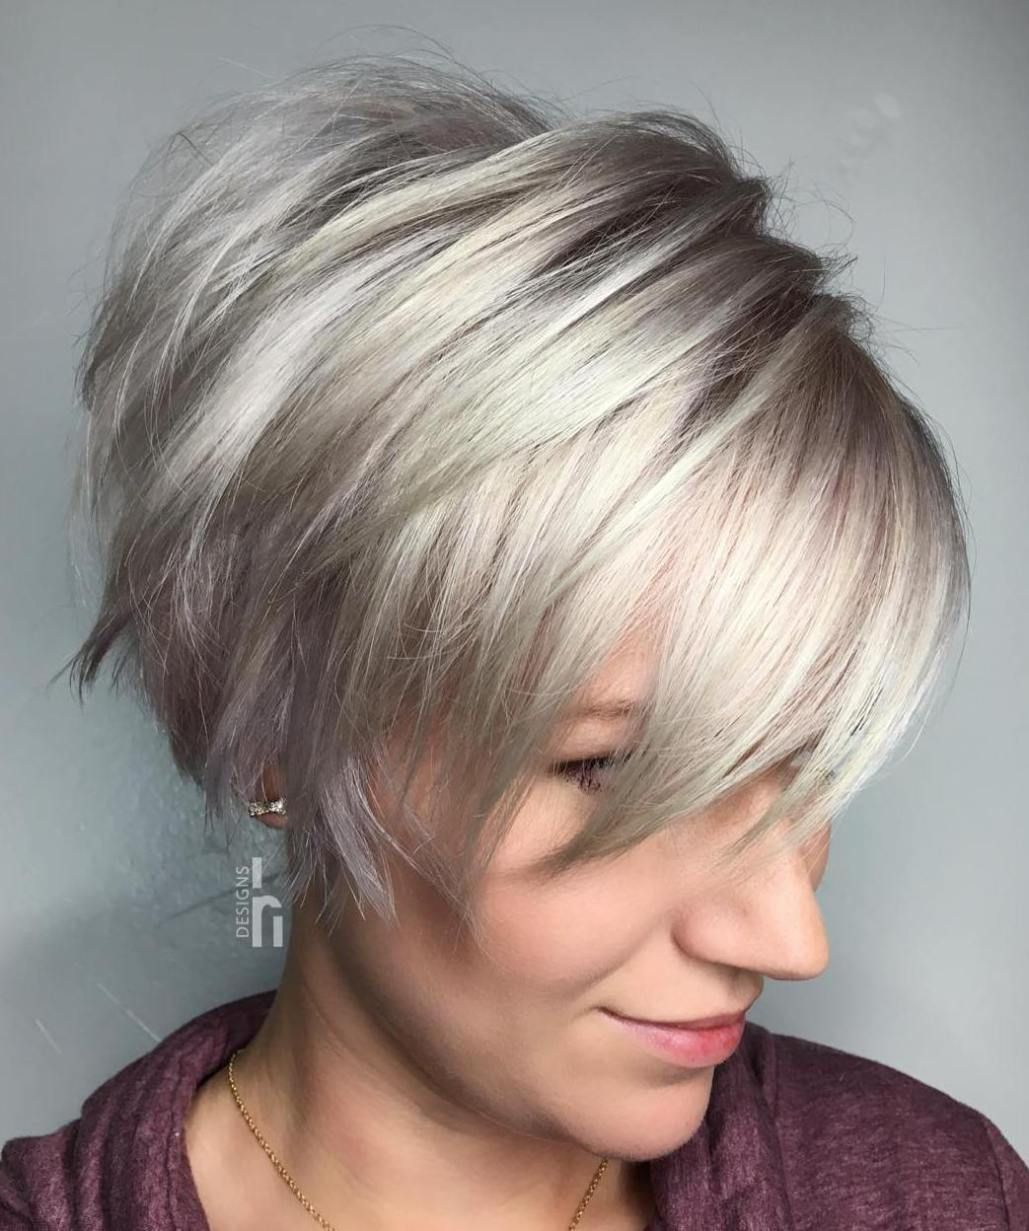 Easy Bob Hairstyles Fascinating 60 Cute And Easytostyle Short Layered Hairstyles  Short Layered